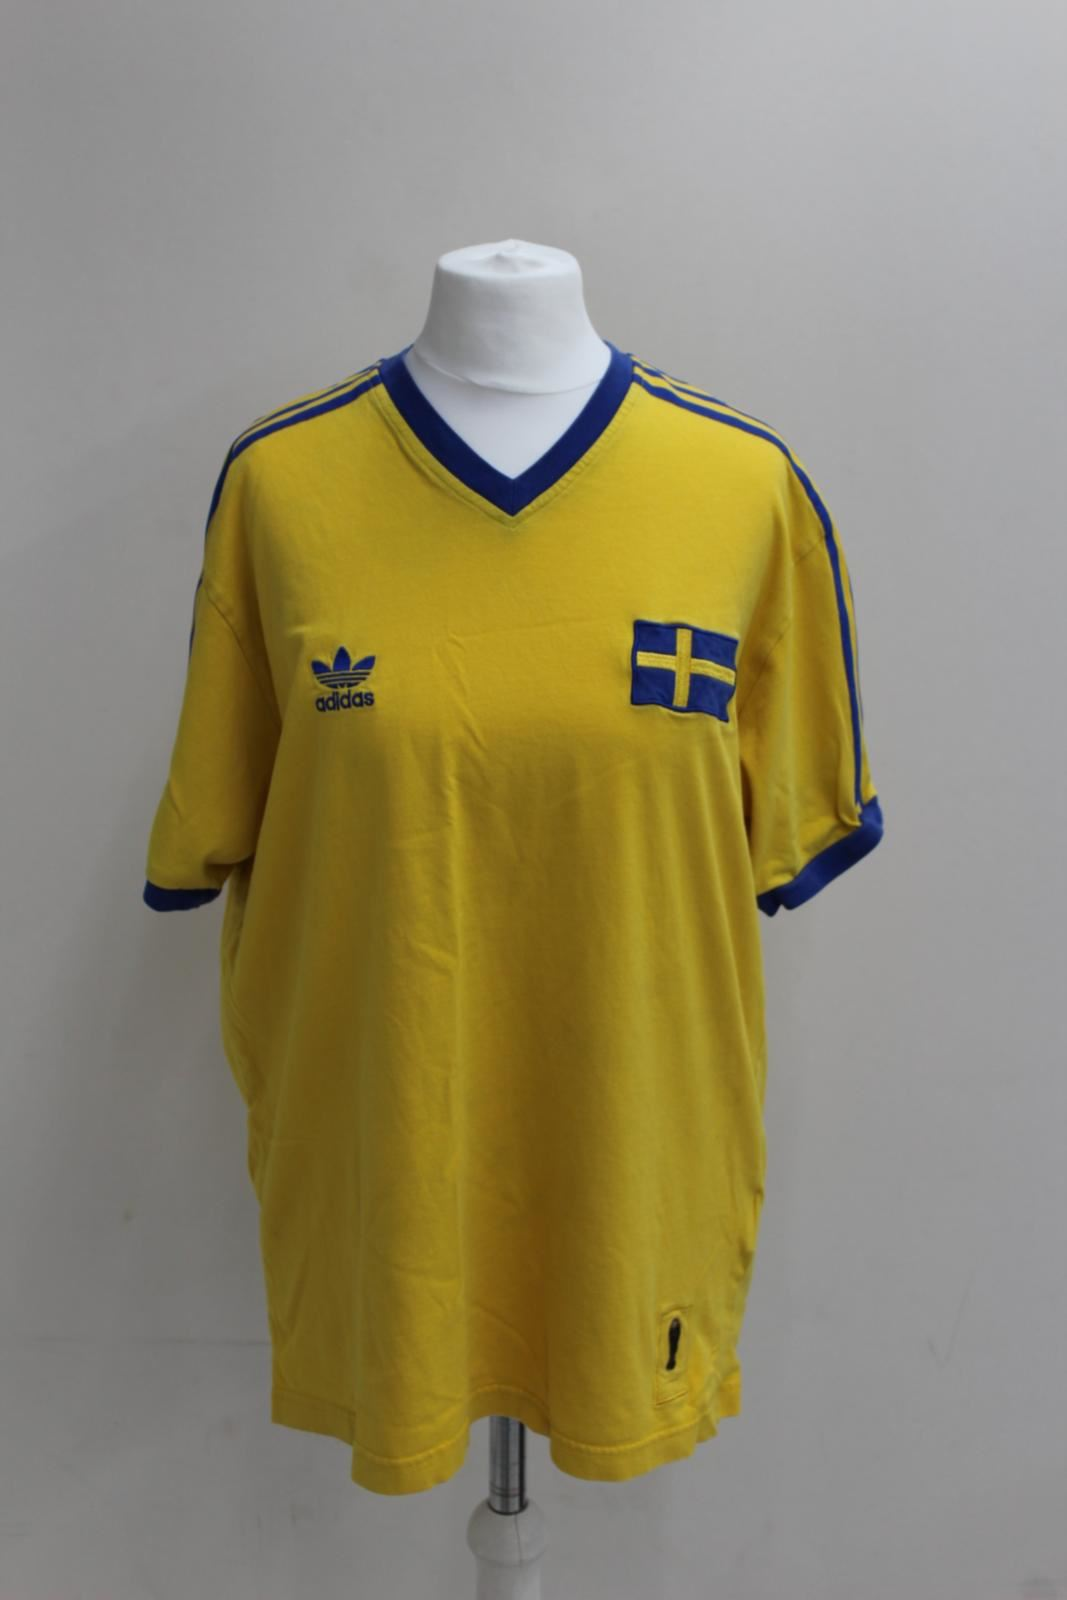 544c51d2955 ADIDAS Yellow No.10 Sweden Vintage 1974 World Cup Replica Jersey T ...